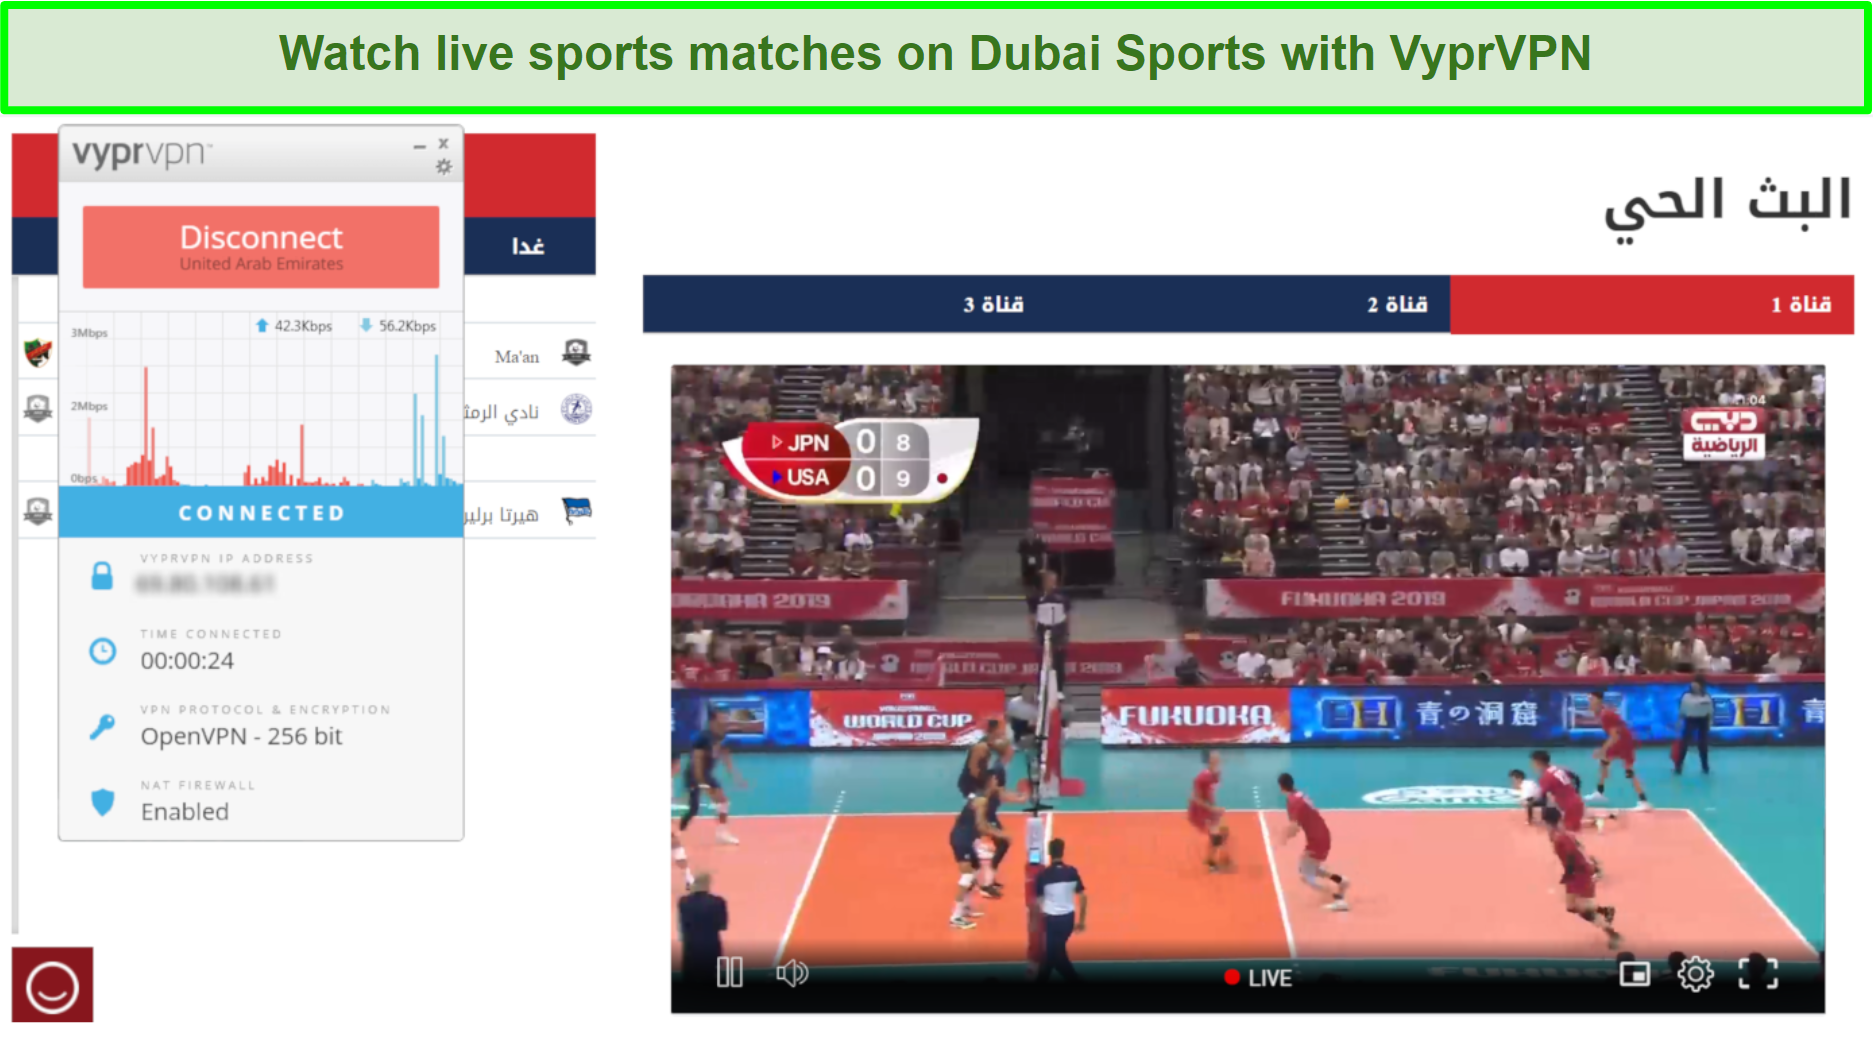 Screenshot of a volleyball match played on Dubai Sports' website with VyprVPN connected